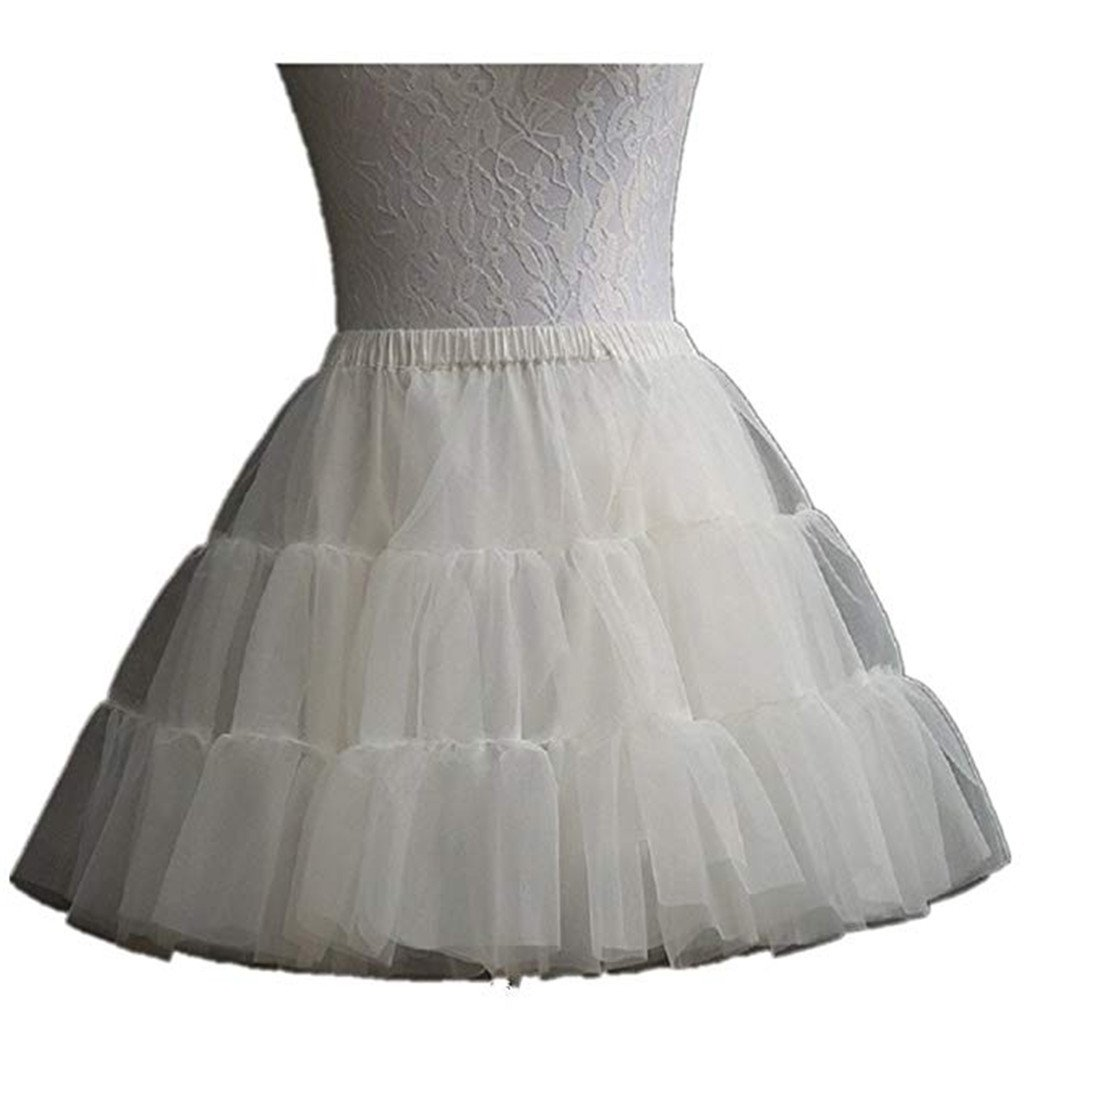 Noriviiq Kids White Hoop Skirt/Hoopless Half Slip Petticoat Crinoline for Flower Girls Dress S9991350173-UK